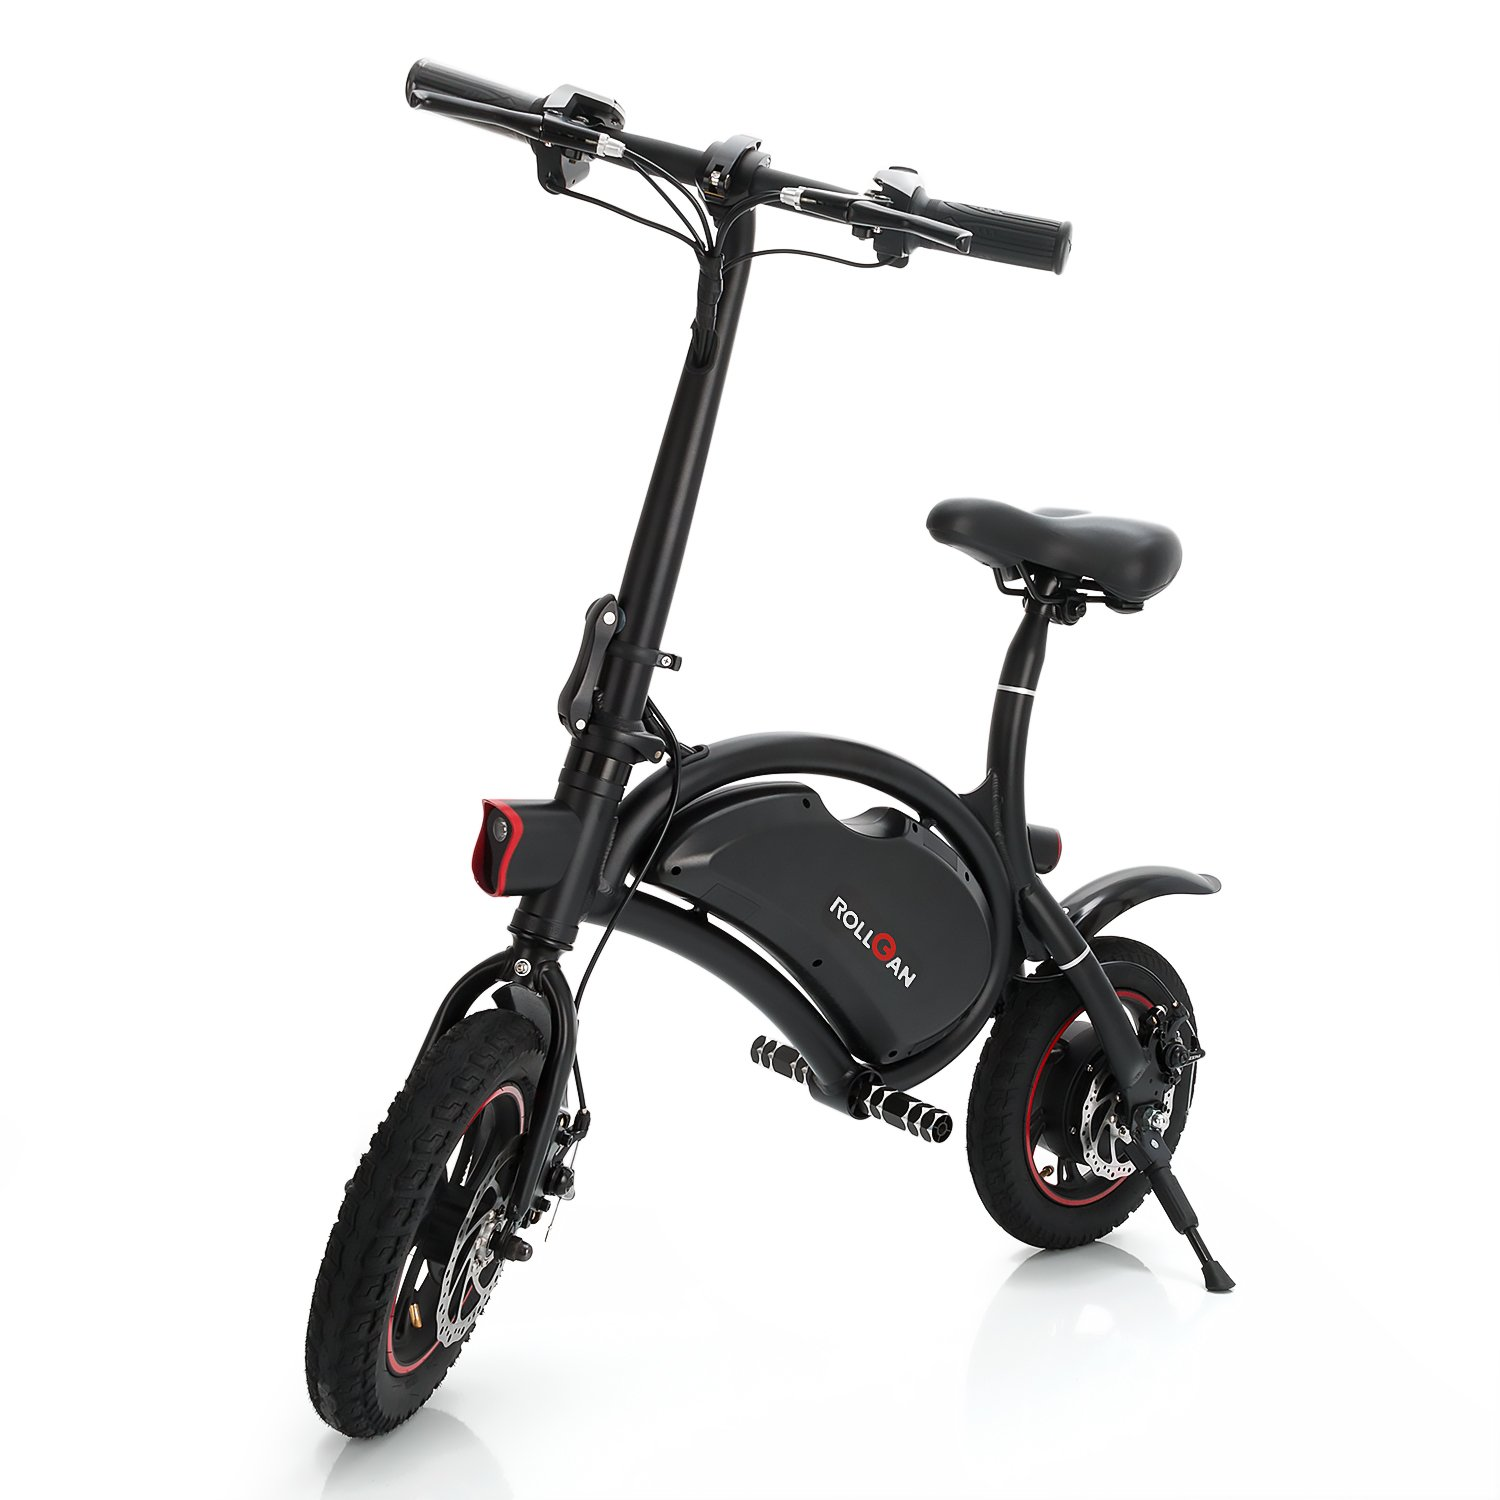 ROLLGAN Dolphin Electric Bike/Bicycle/Scooter with UL2272 12 inch Folding Body E-Bike with 12 Mile Range,Collapsible Frame,APP Support,36V 350W Rear Engine,Dual Mechanical Disc Brakes by ROLLGAN